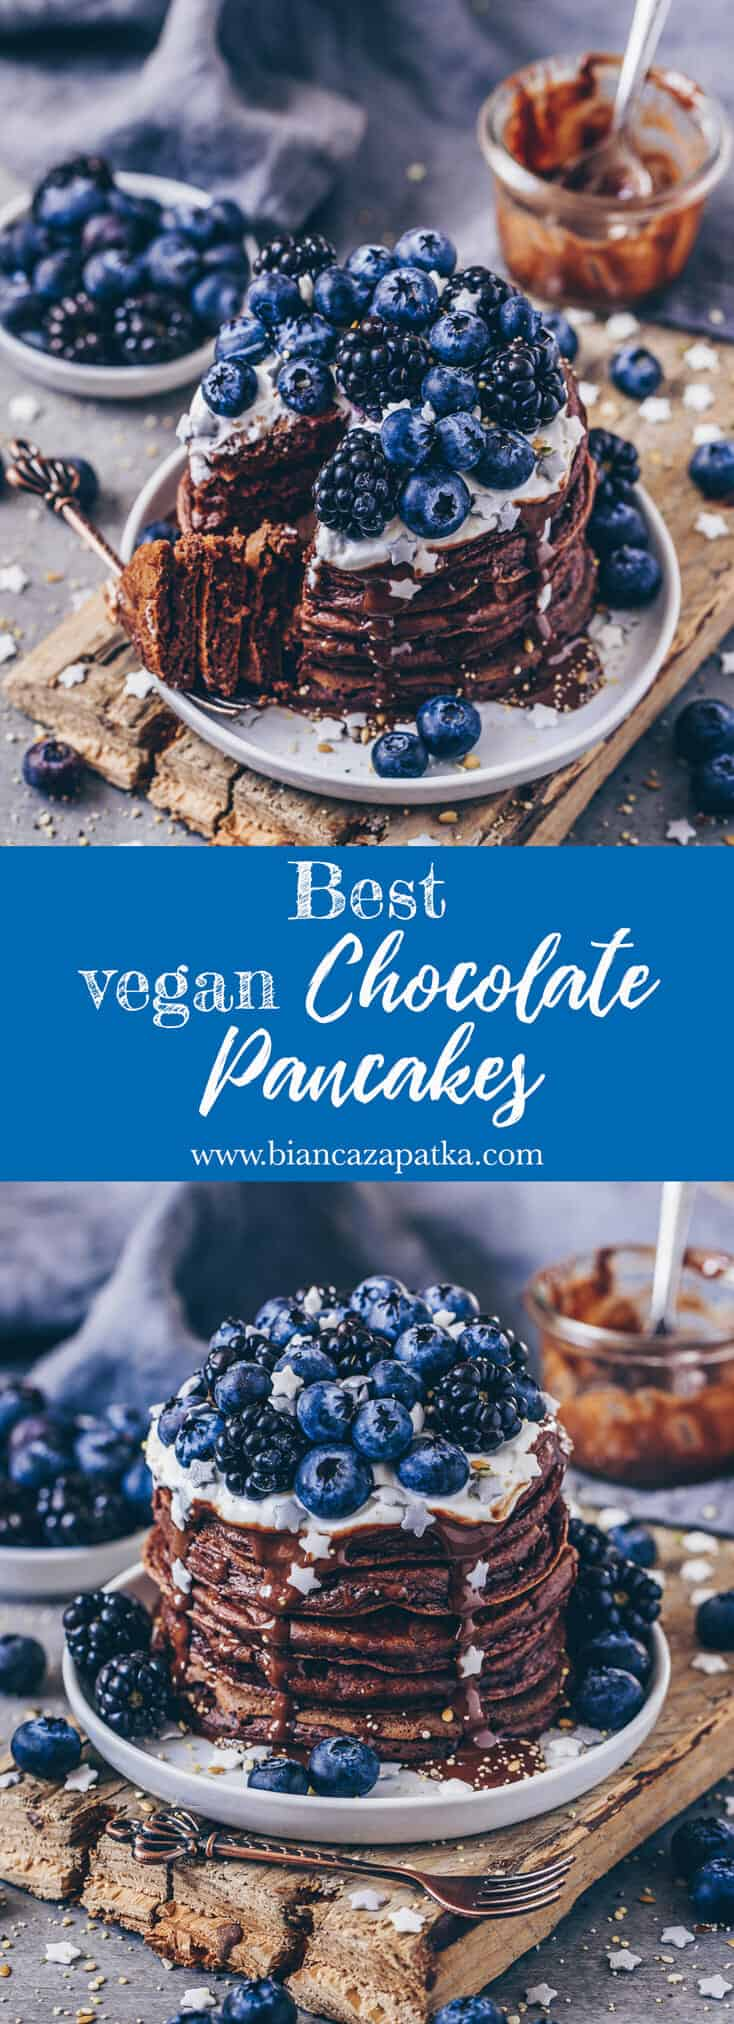 The BEST recipe for Vegan Chocolate Pancakes! These chocolatey Vegan Pancakes are very easy and quick to make and so delicious! Egg-free & dairy-free!